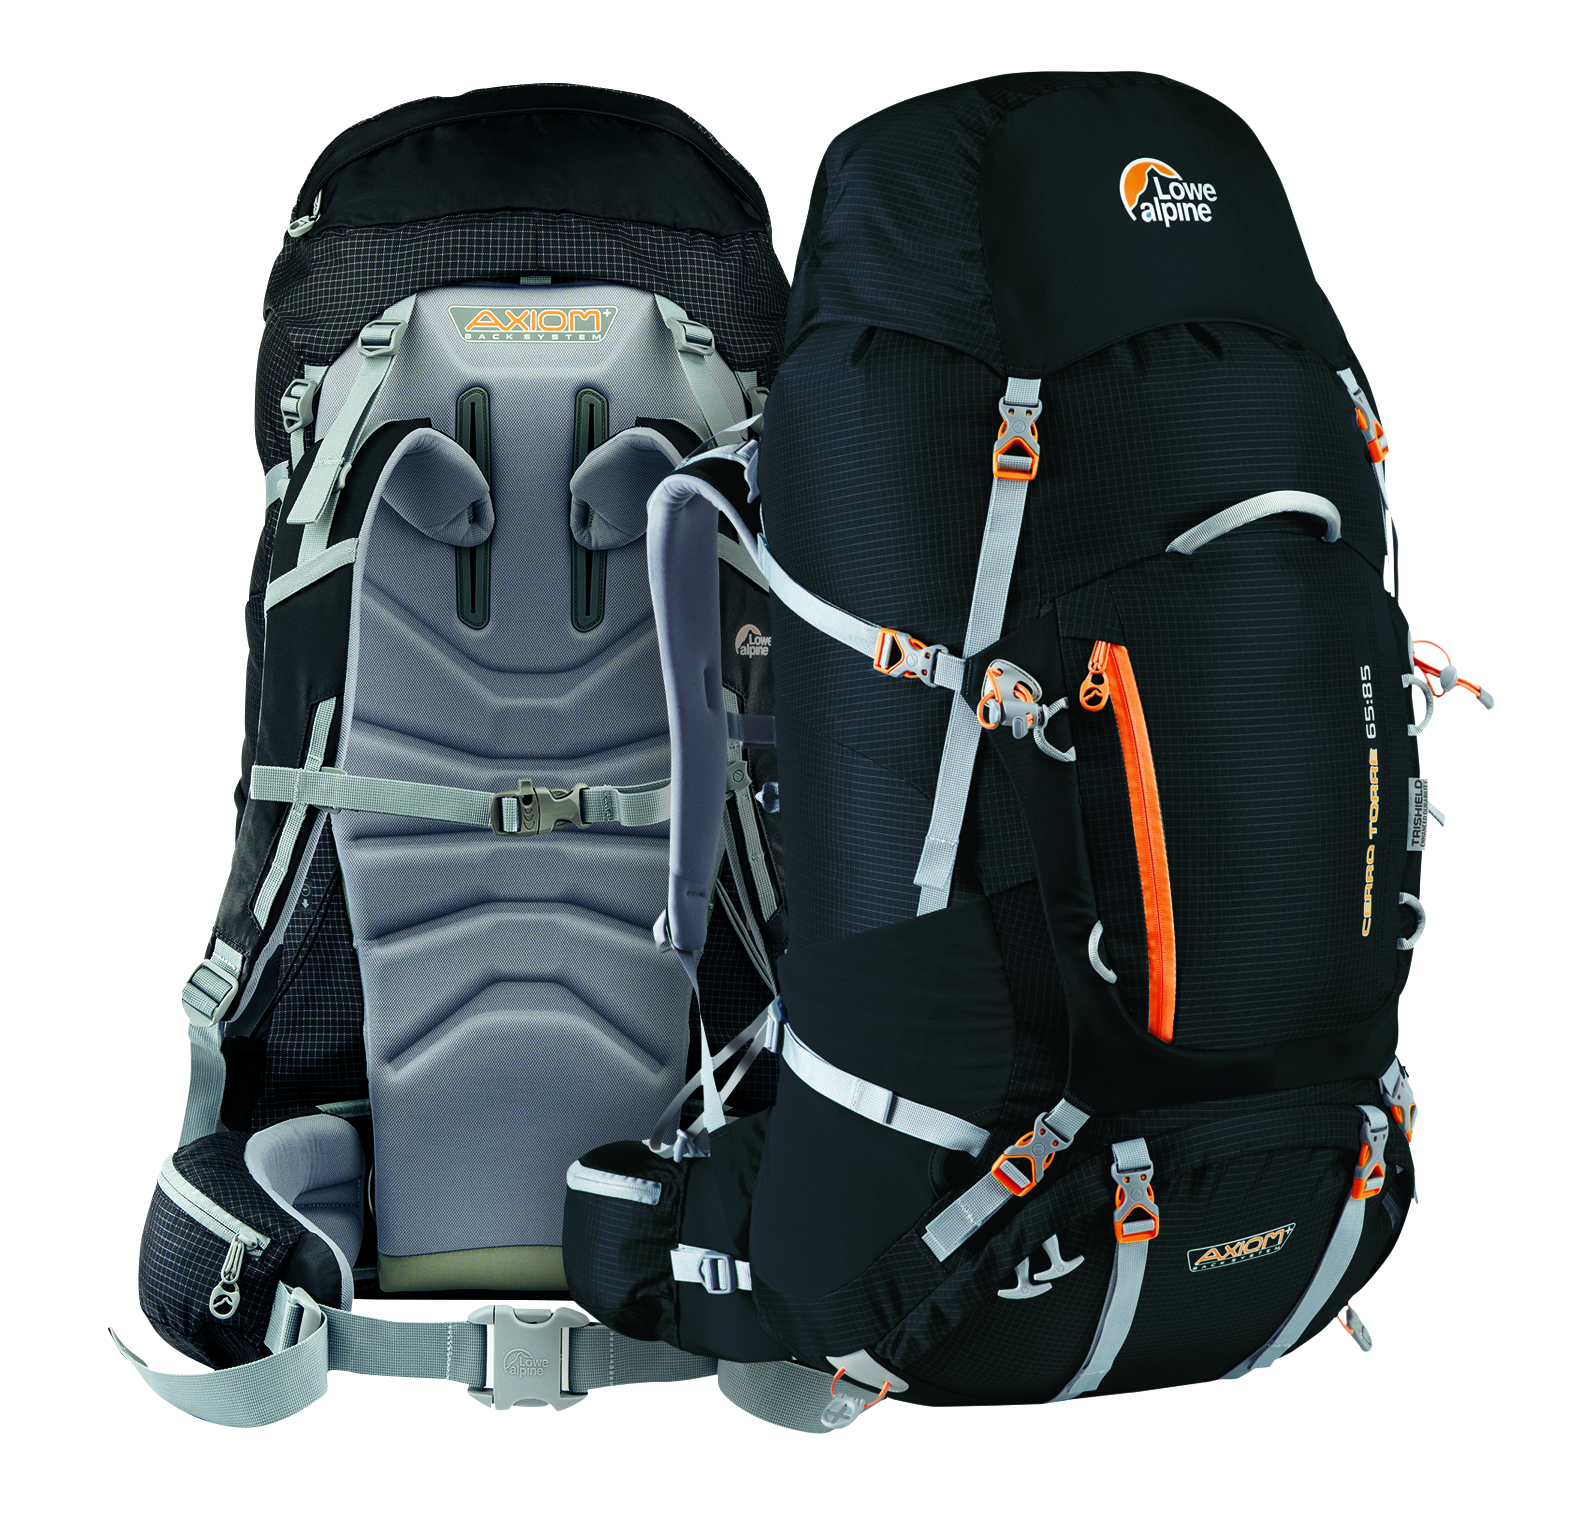 New Kit: Lowe Alpine rucksacks updated